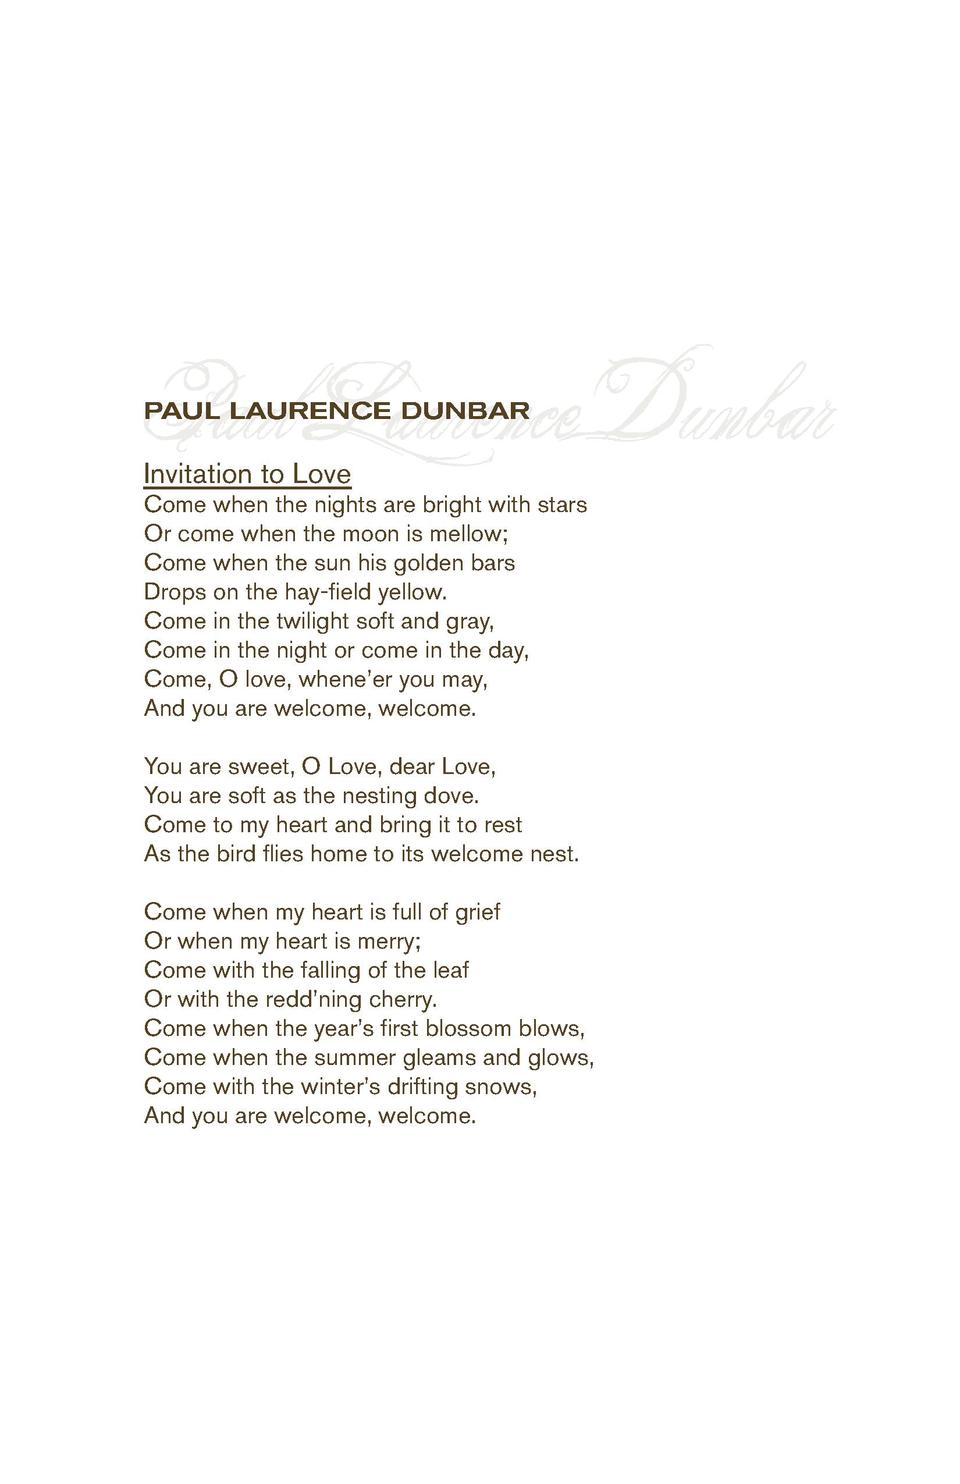 Paul Laurence Dunbar PAUL LAURENCE DUNBAR  Invitation to Love  Come when the nights are bright with stars Or come when the...